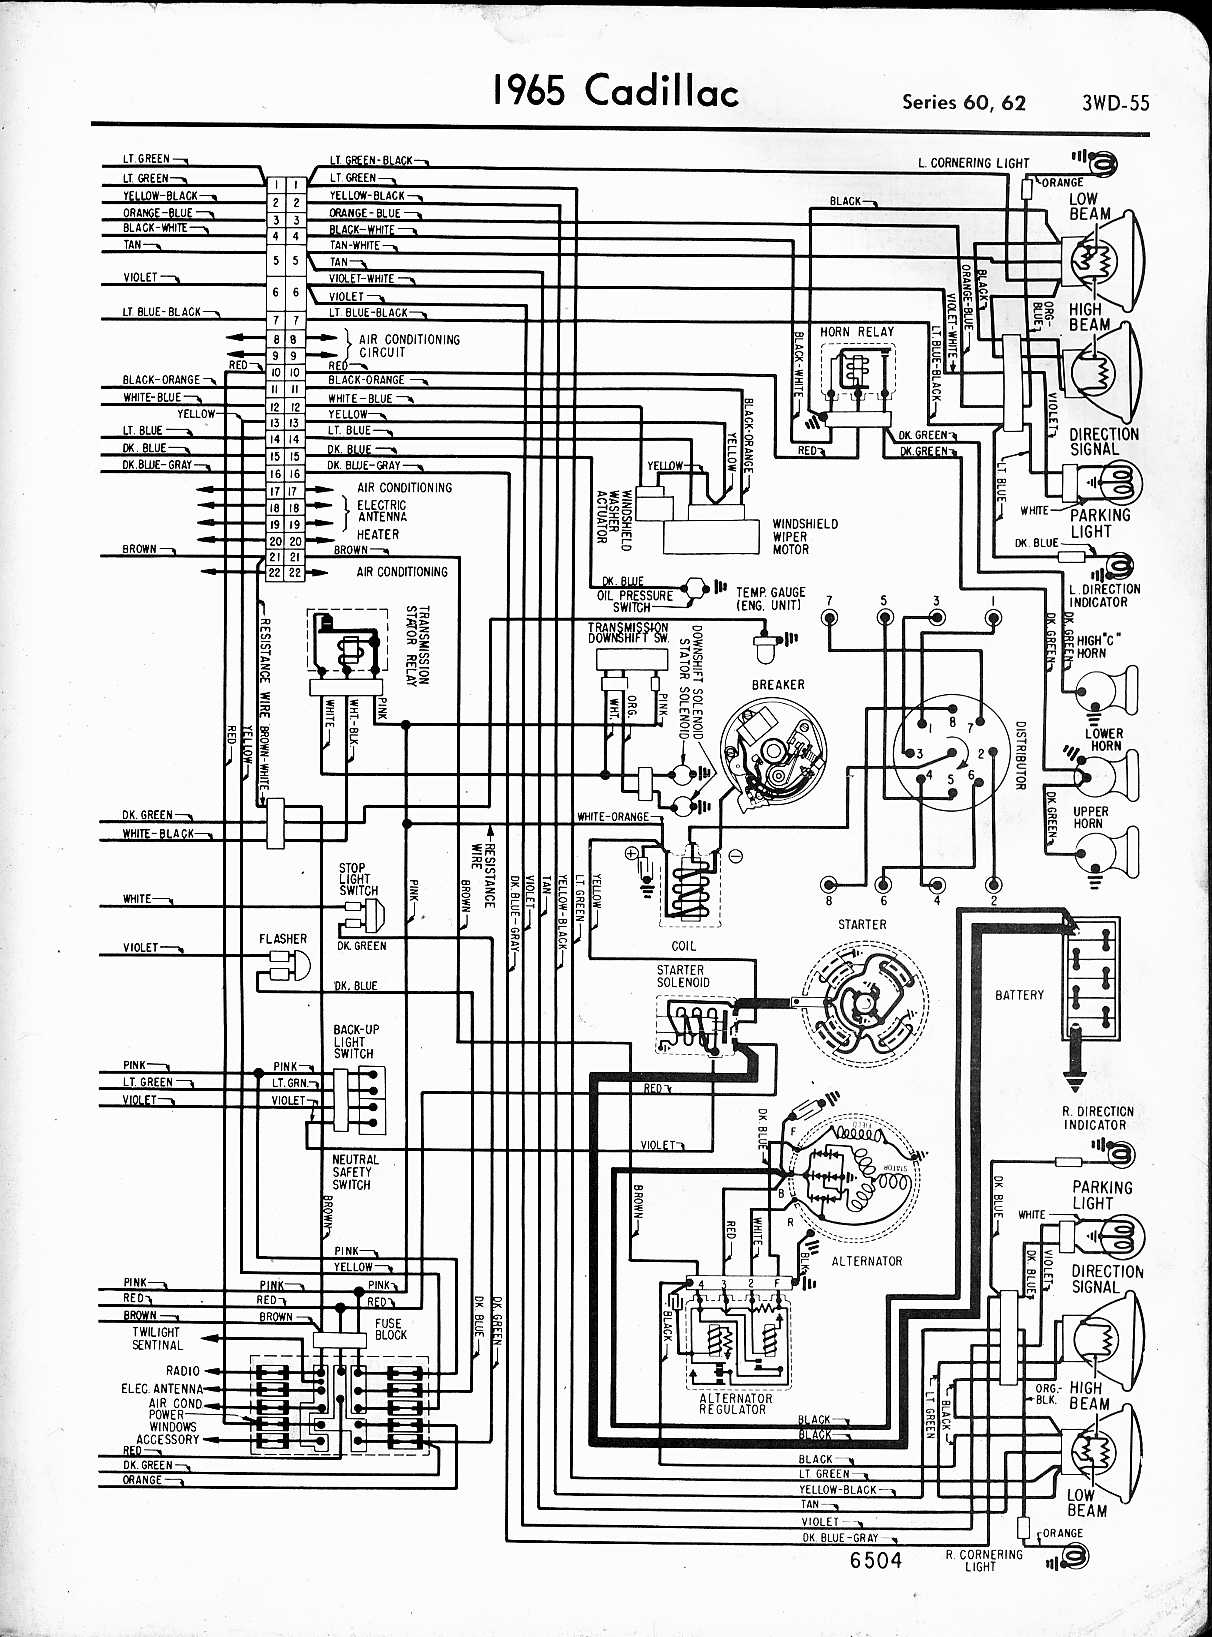 MWireCadi65_3WD 055 68 cadillac wiring harness 1969 cadillac \u2022 free wiring diagrams 1999 cadillac deville engine wiring harness at eliteediting.co